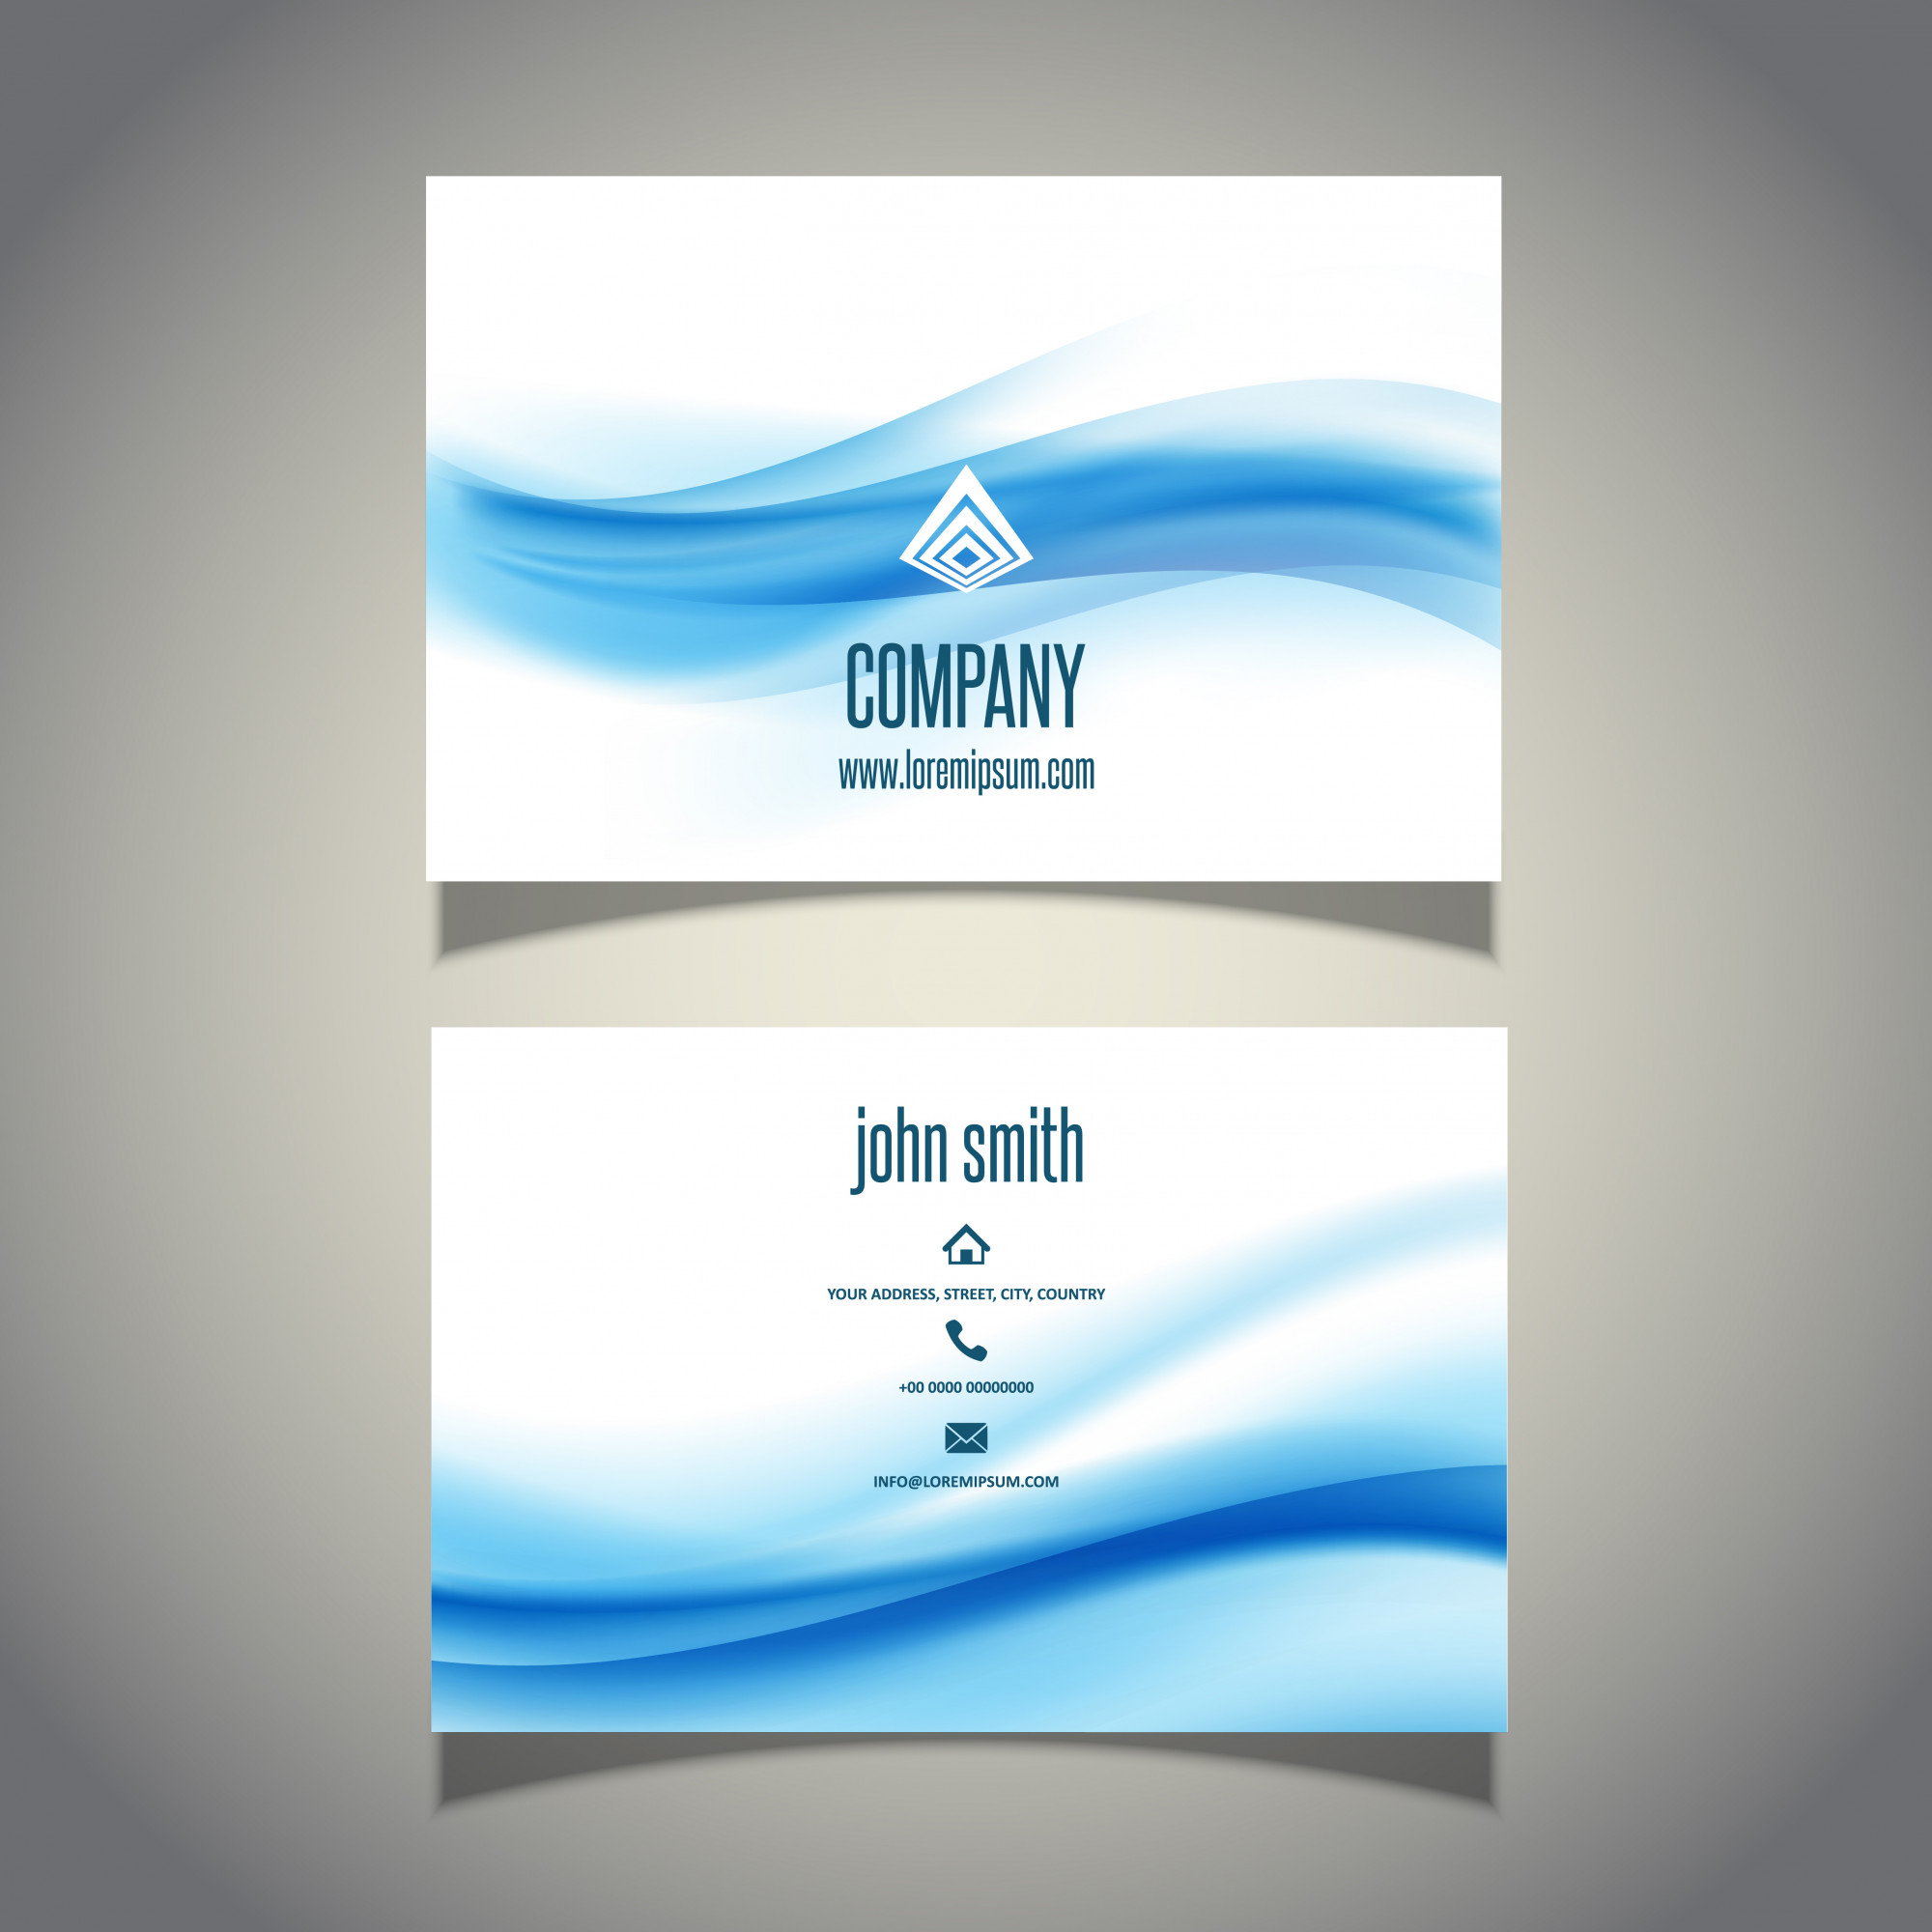 Business card with waves design